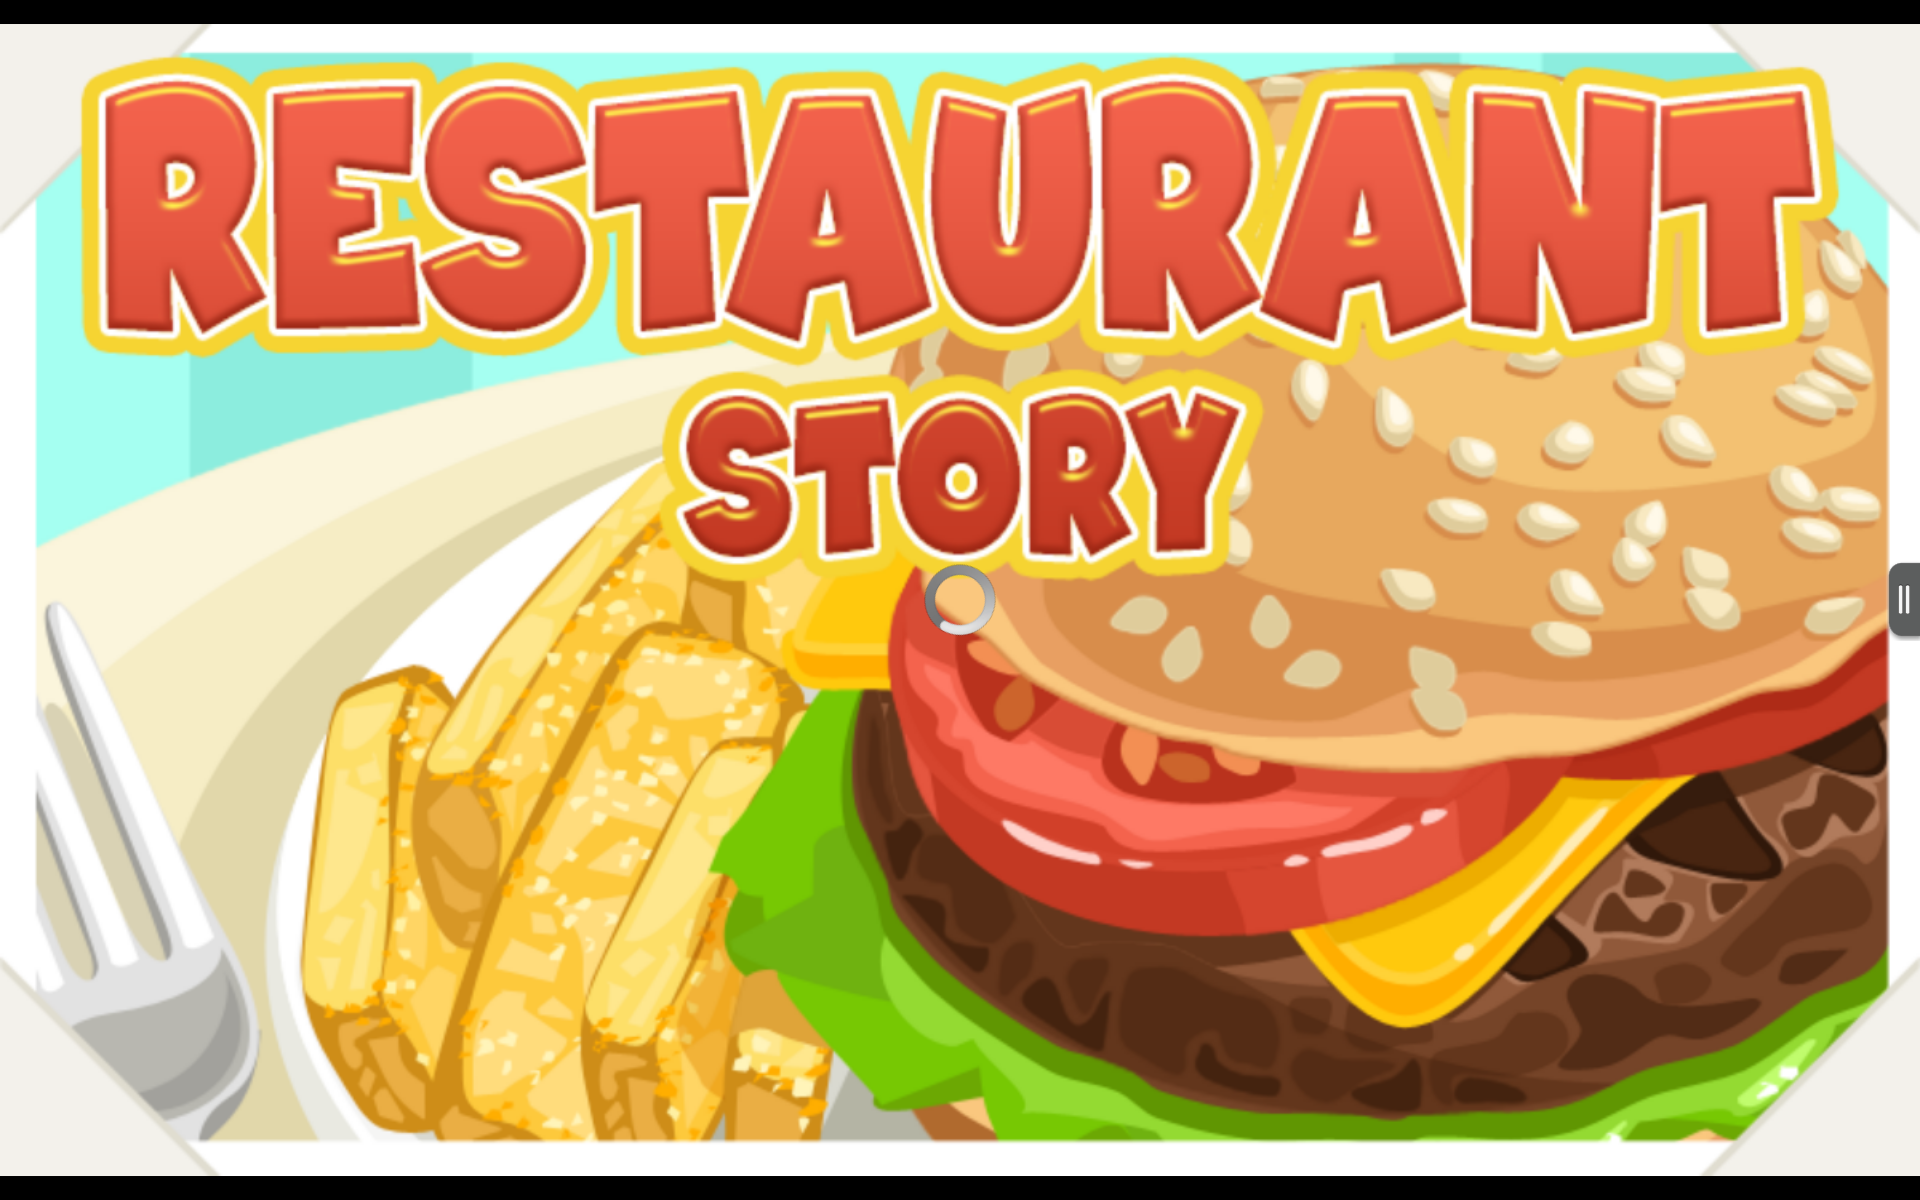 Home Design Game By Teamlava Restaurant Story Import It All